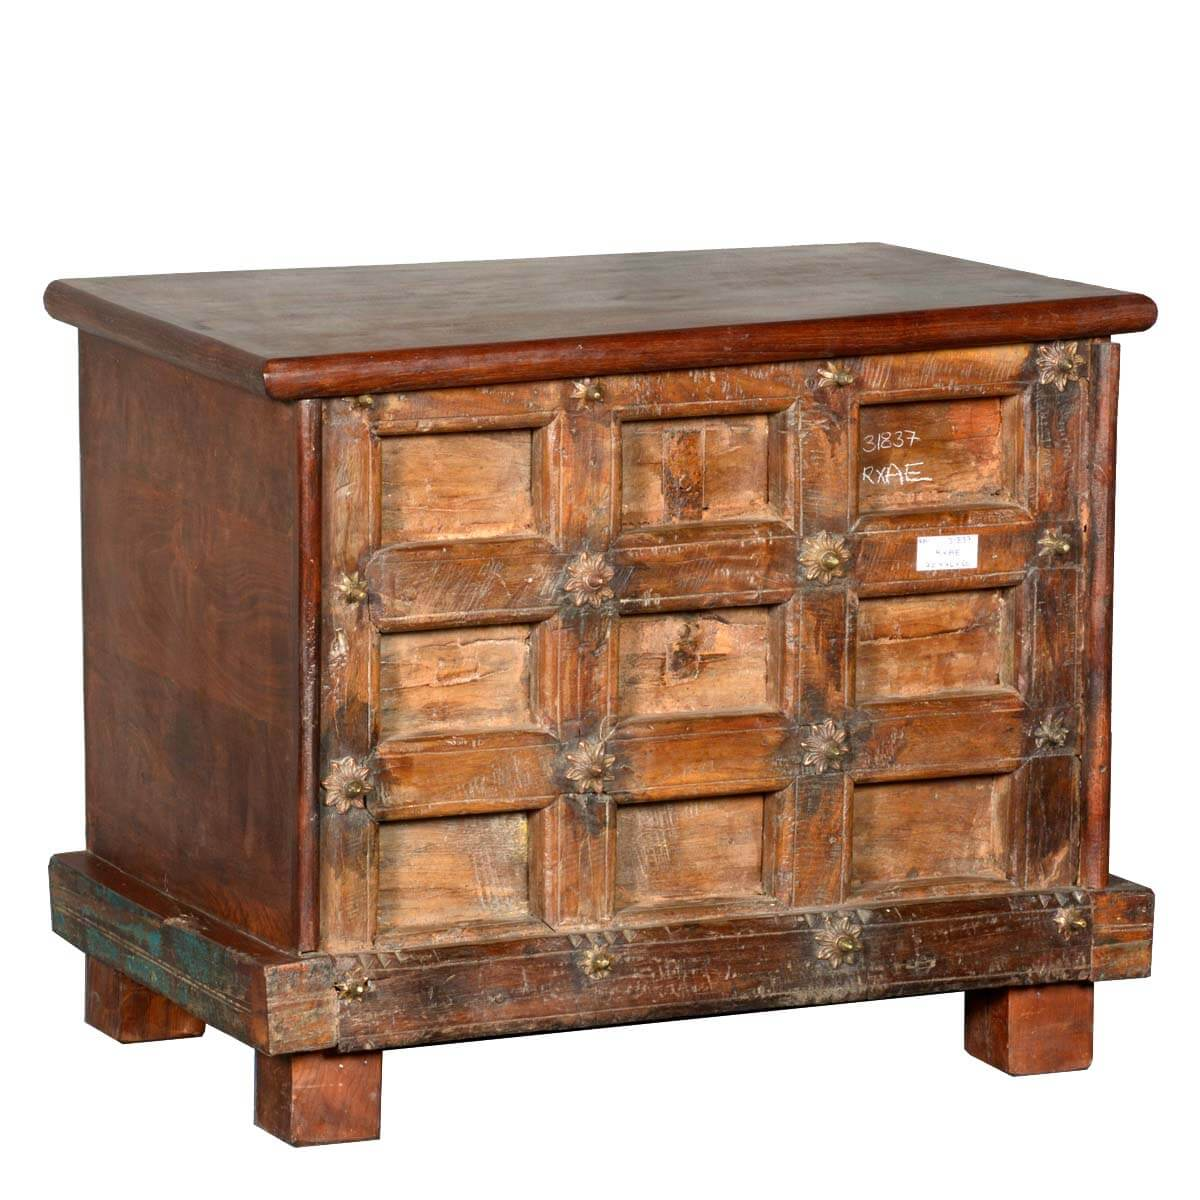 Wonderful image of Beaufort Rustic Reclaimed Wood Gothic Mini Storage Trunk Chest with #B27F19 color and 1200x1200 pixels